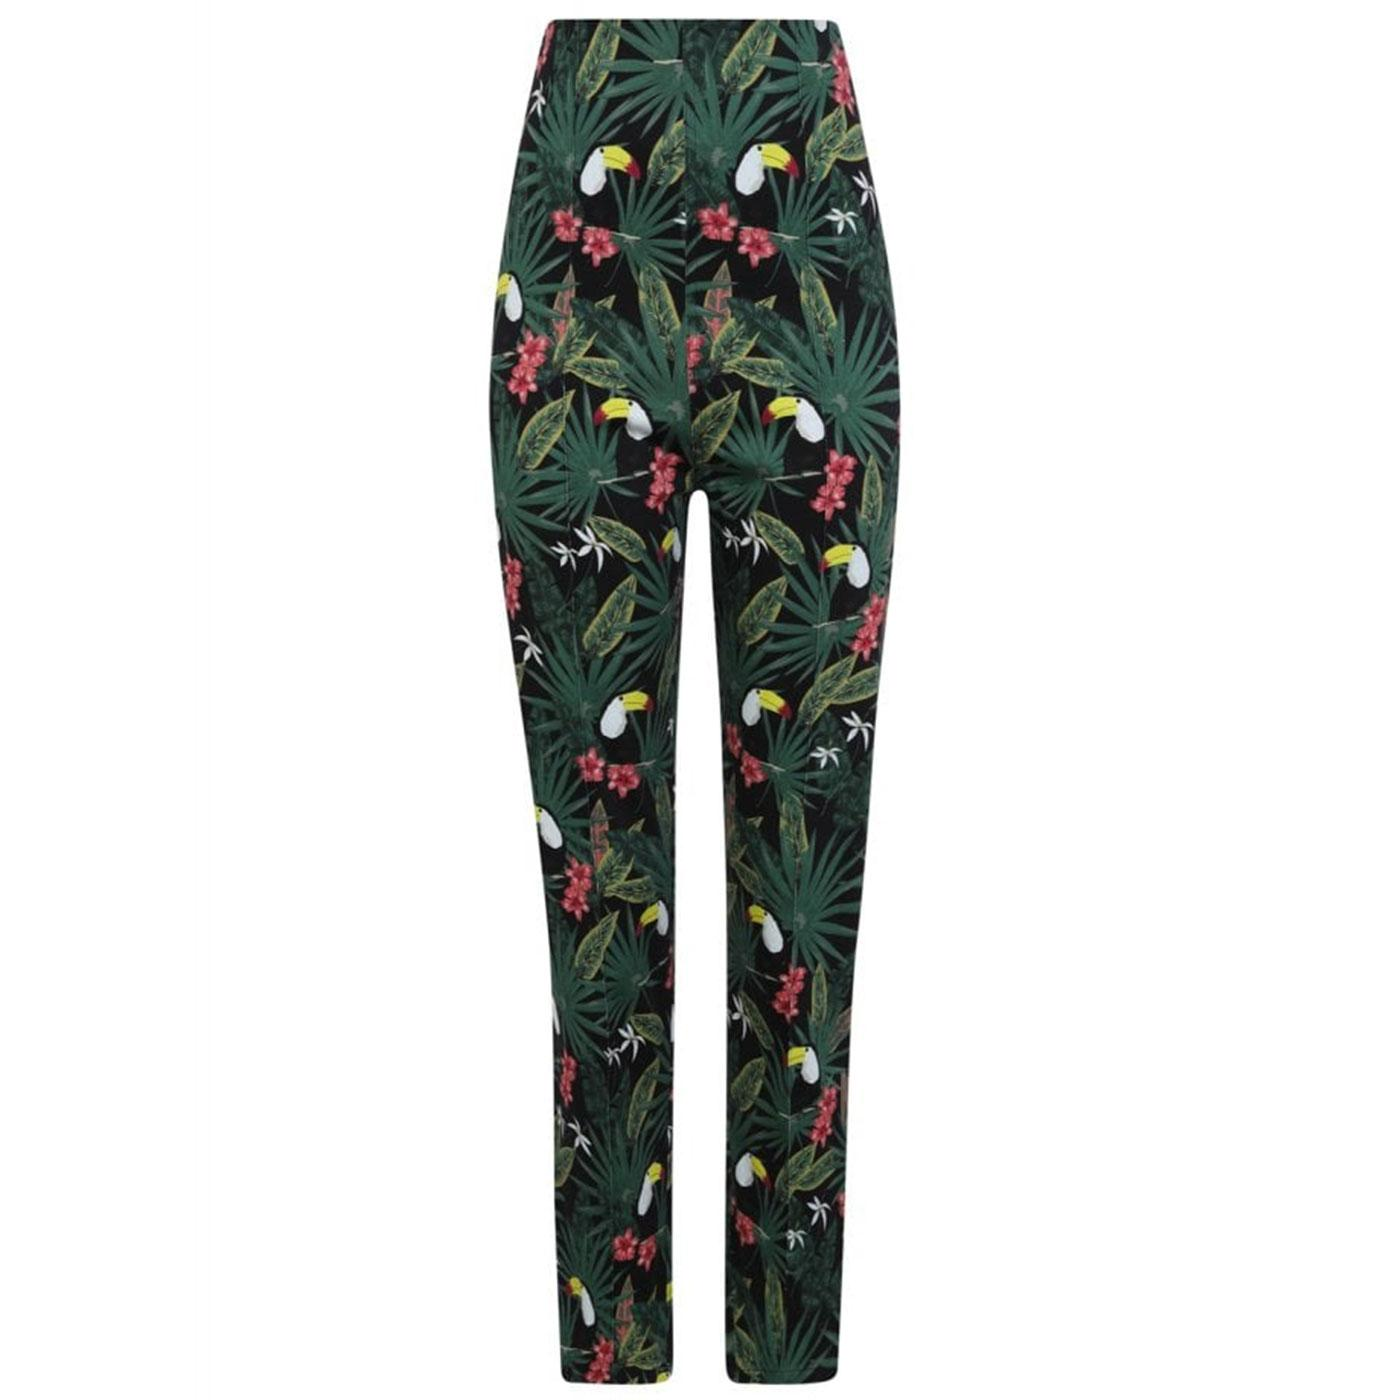 Bonnie COLLECTIF Womens Retro 50s Cigarette Pants